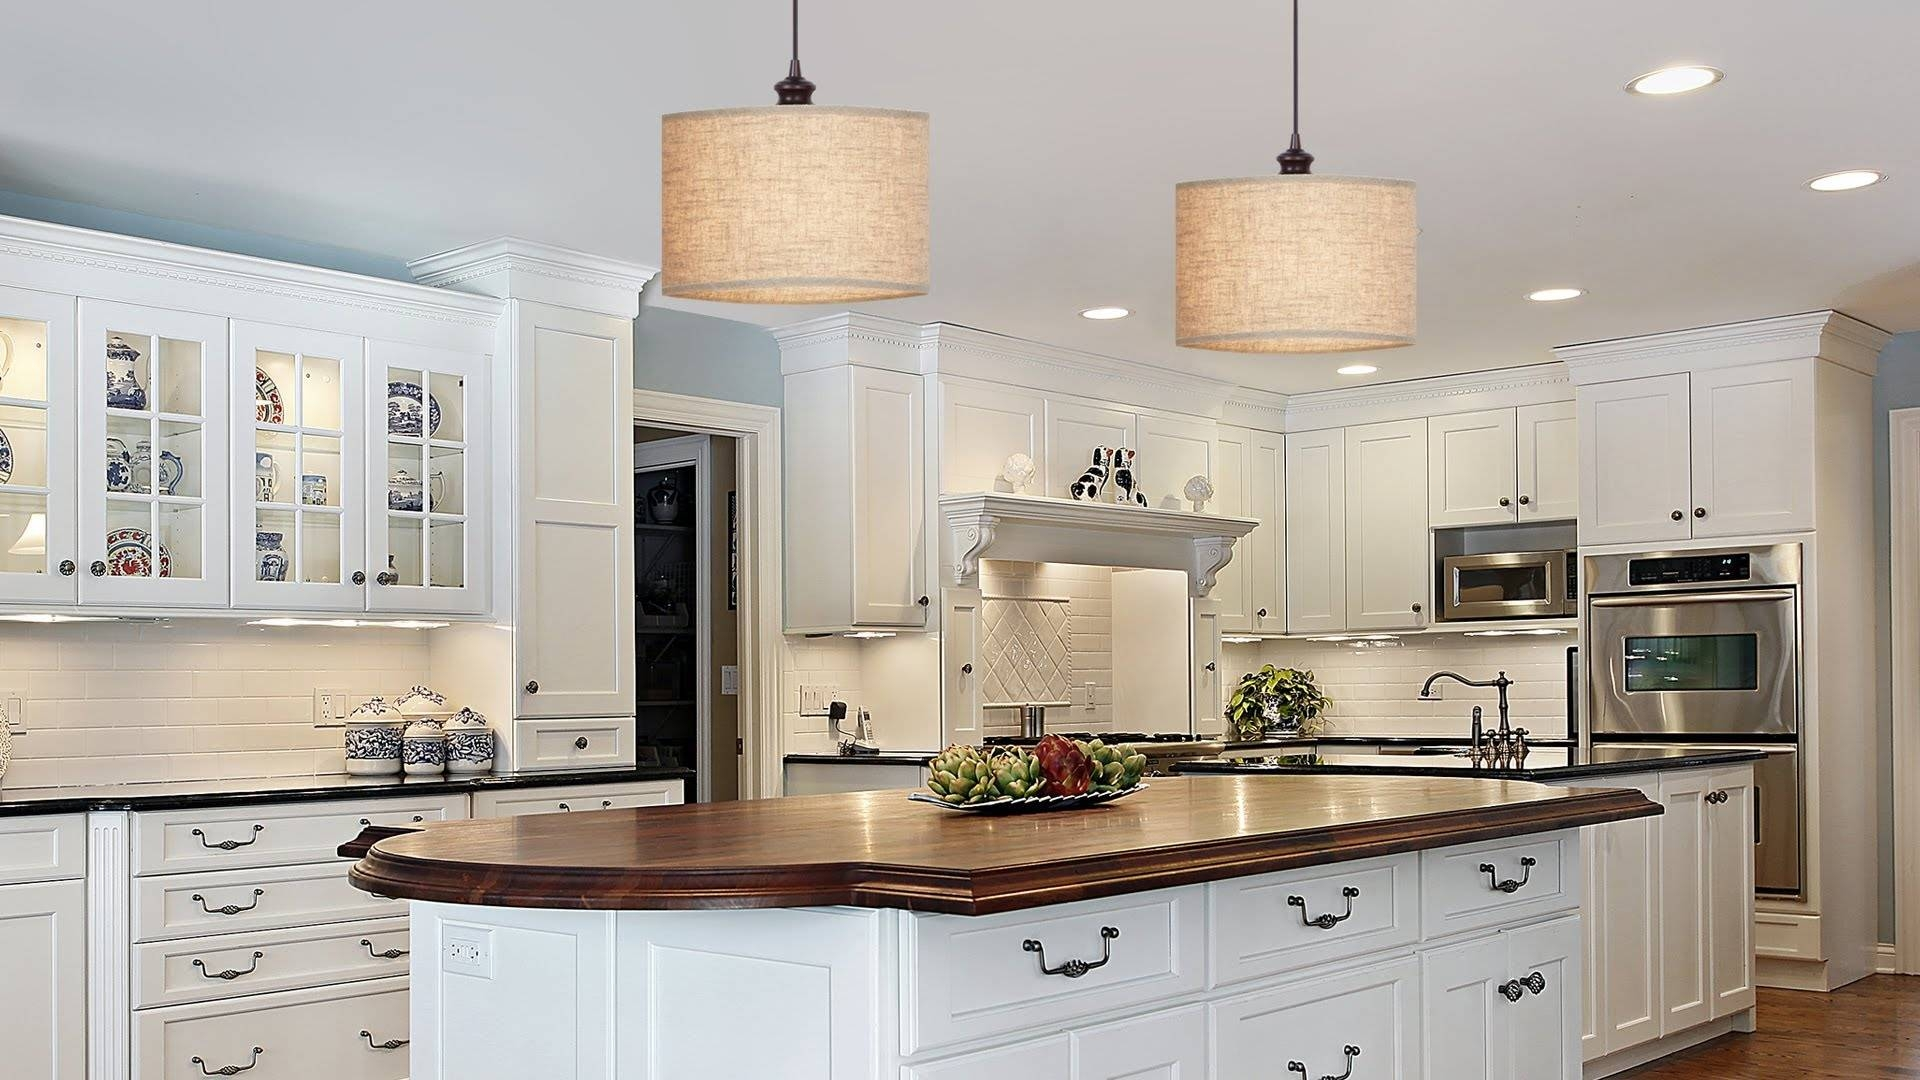 Convert Recessed Lights Into Pendant Lights - Youtube with regard to Can Lights to Pendant Lights (Image 3 of 15)